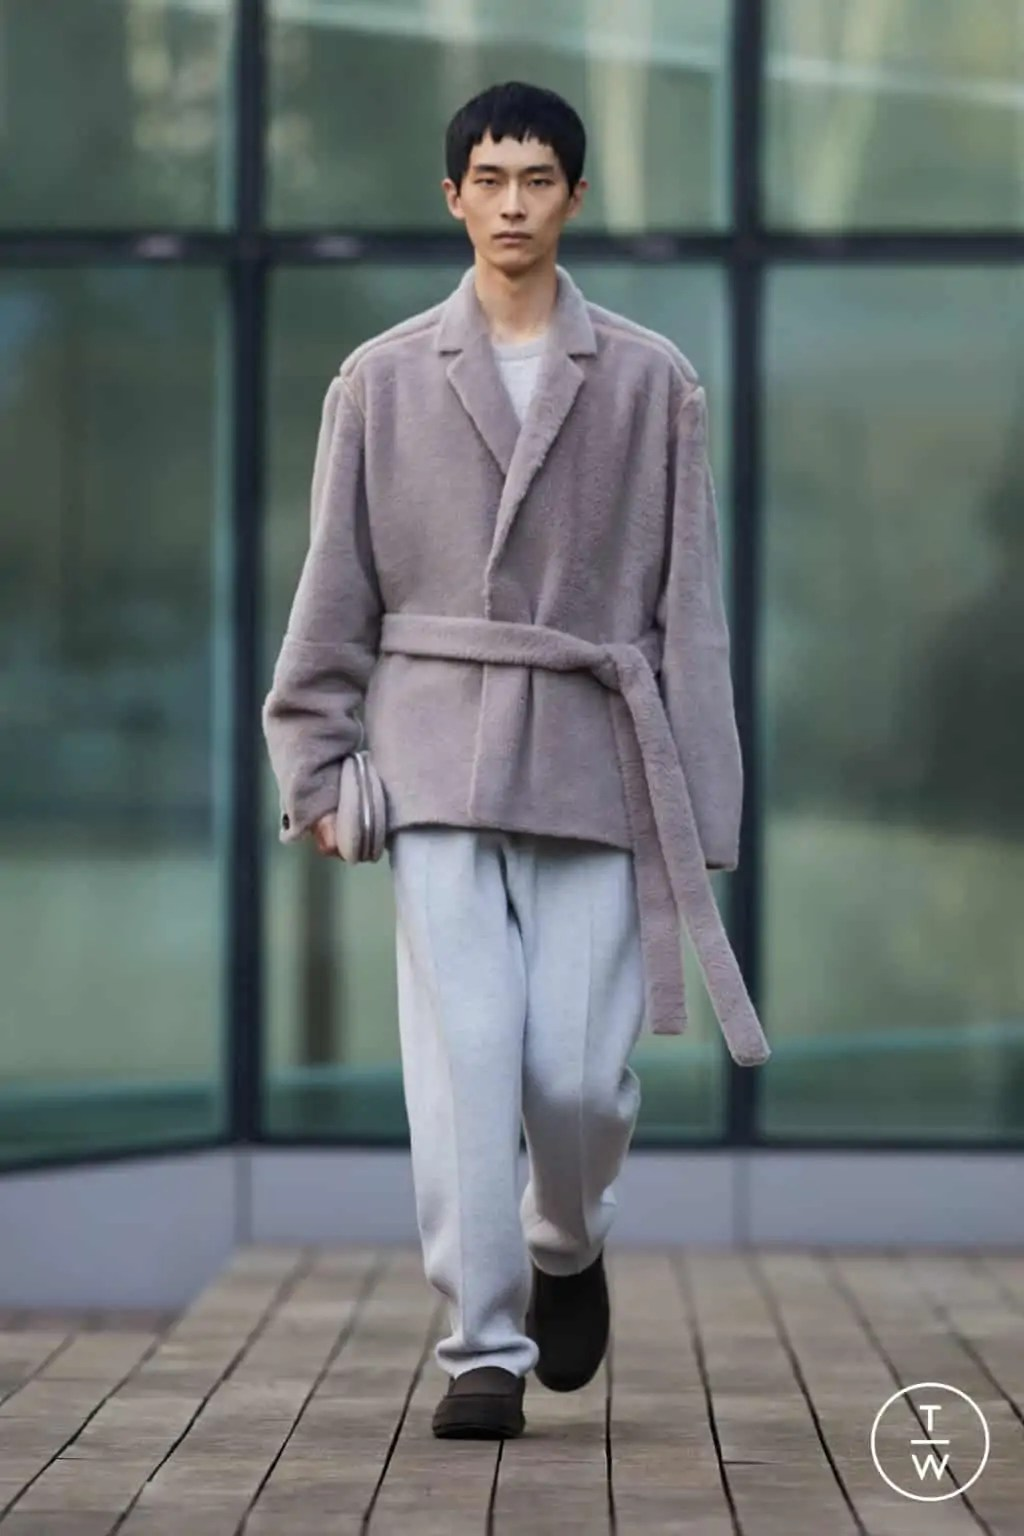 15 FALL/WINTER TRENDS FOR MEN IN 2021 485